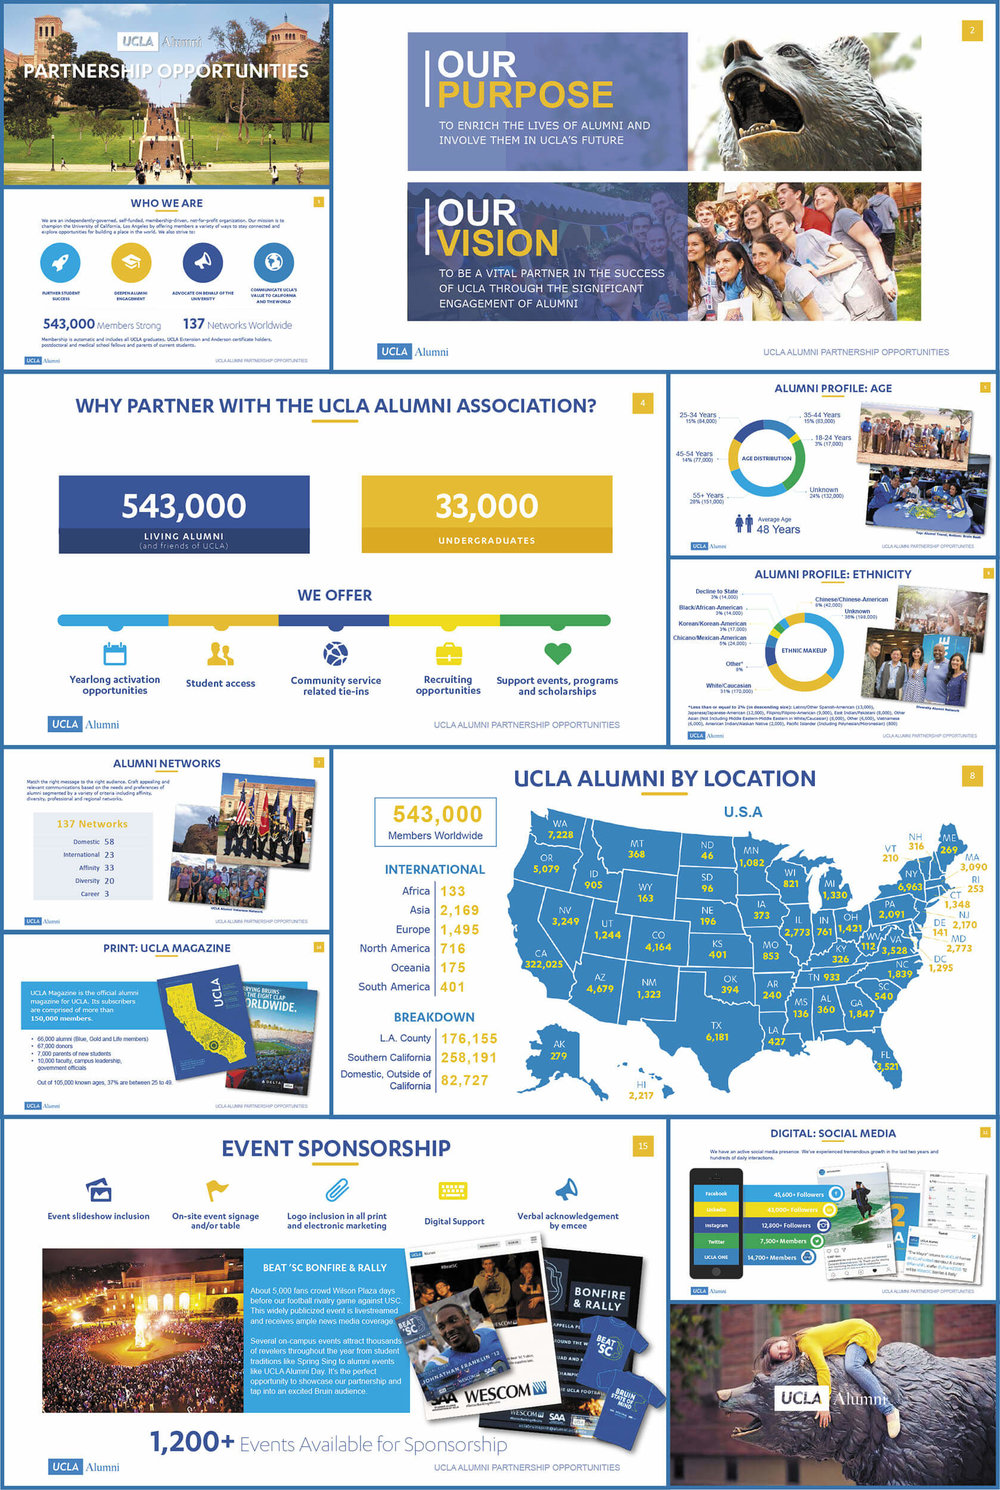 This PowerPoint deck helped the UCLA Alumni Business Development team close major brand partnerships. It had to be both professional, engaging, easy to edit, and as friendly as UCLA's events.